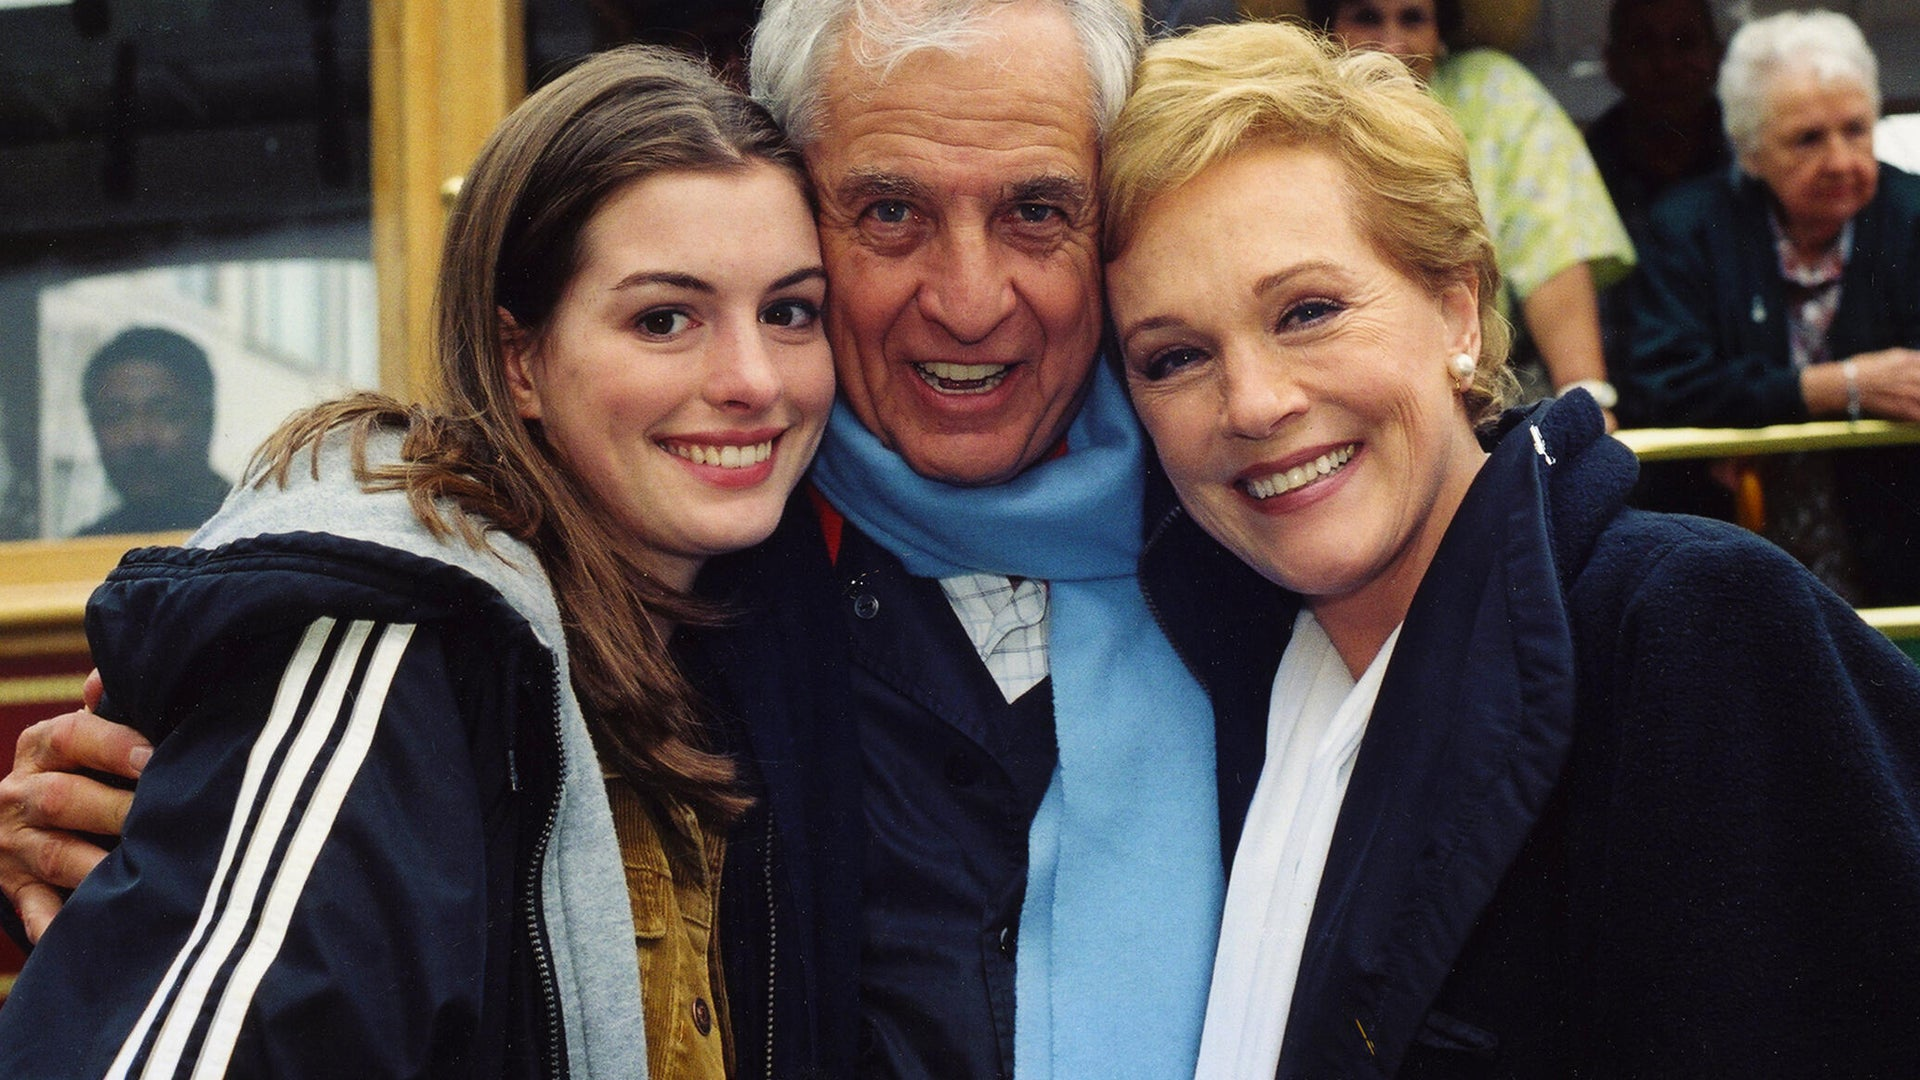 Anne Hathaway, Garry Marshall, and Julie Andrews